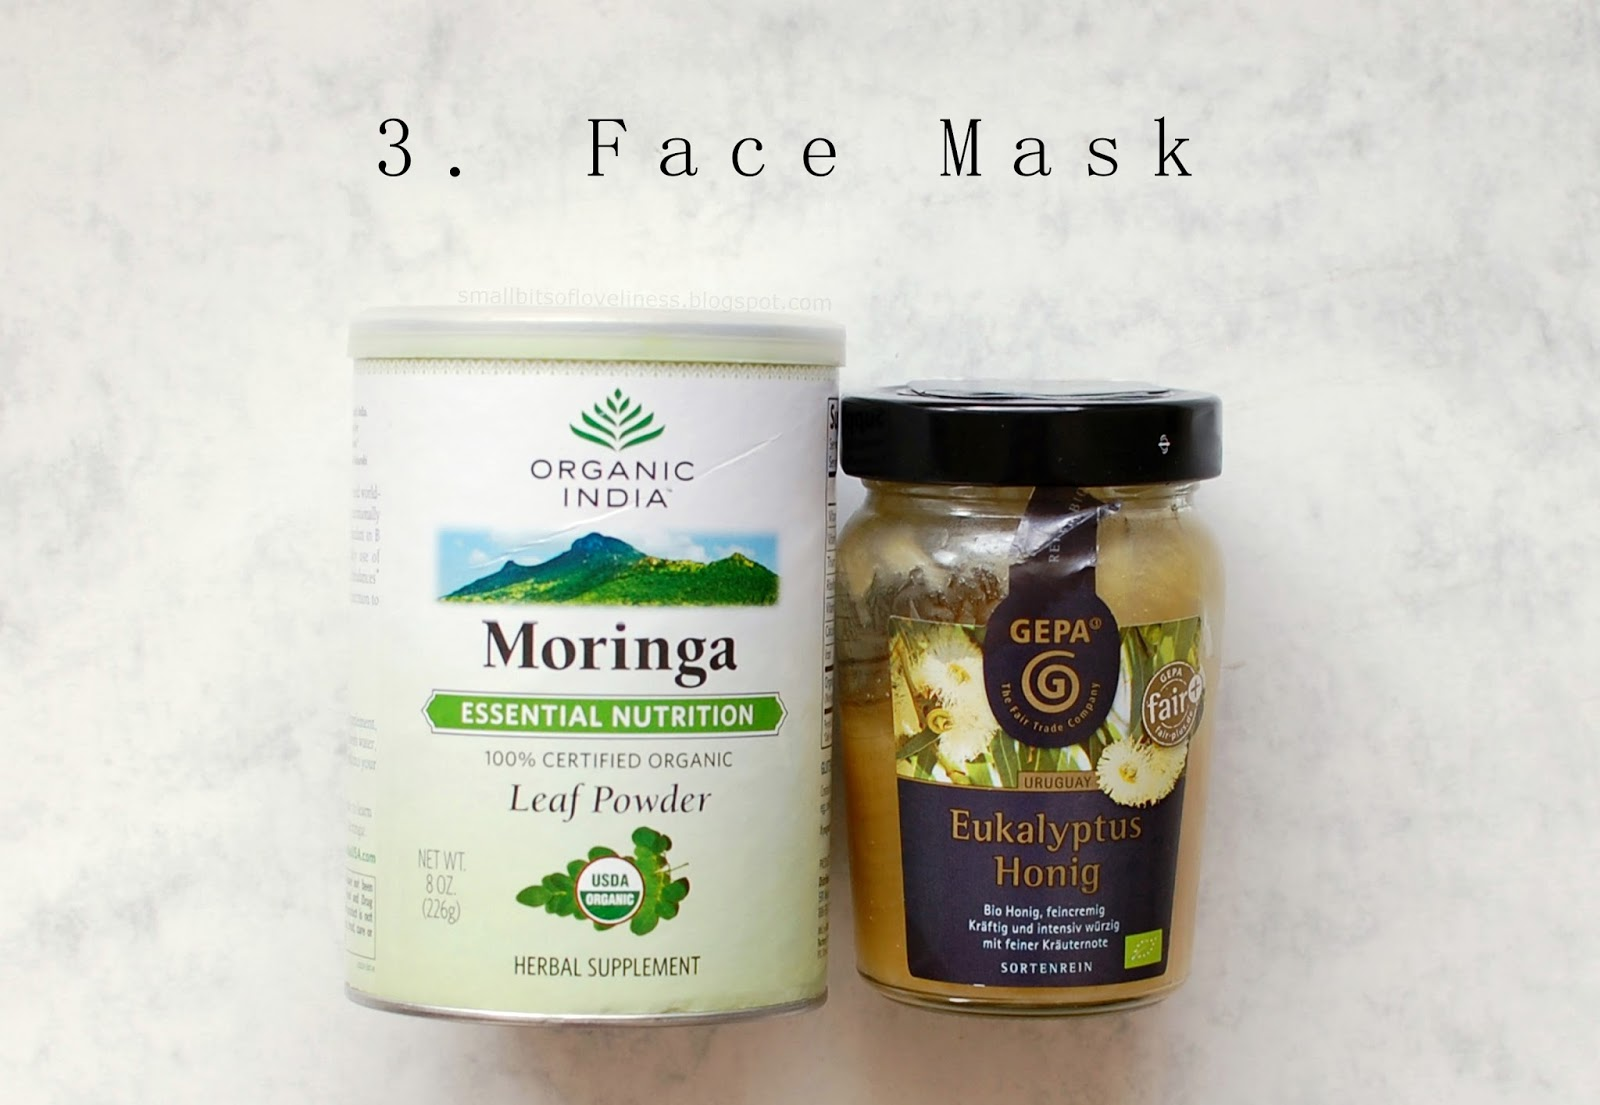 Moringa Eucalyptus Honey Mask